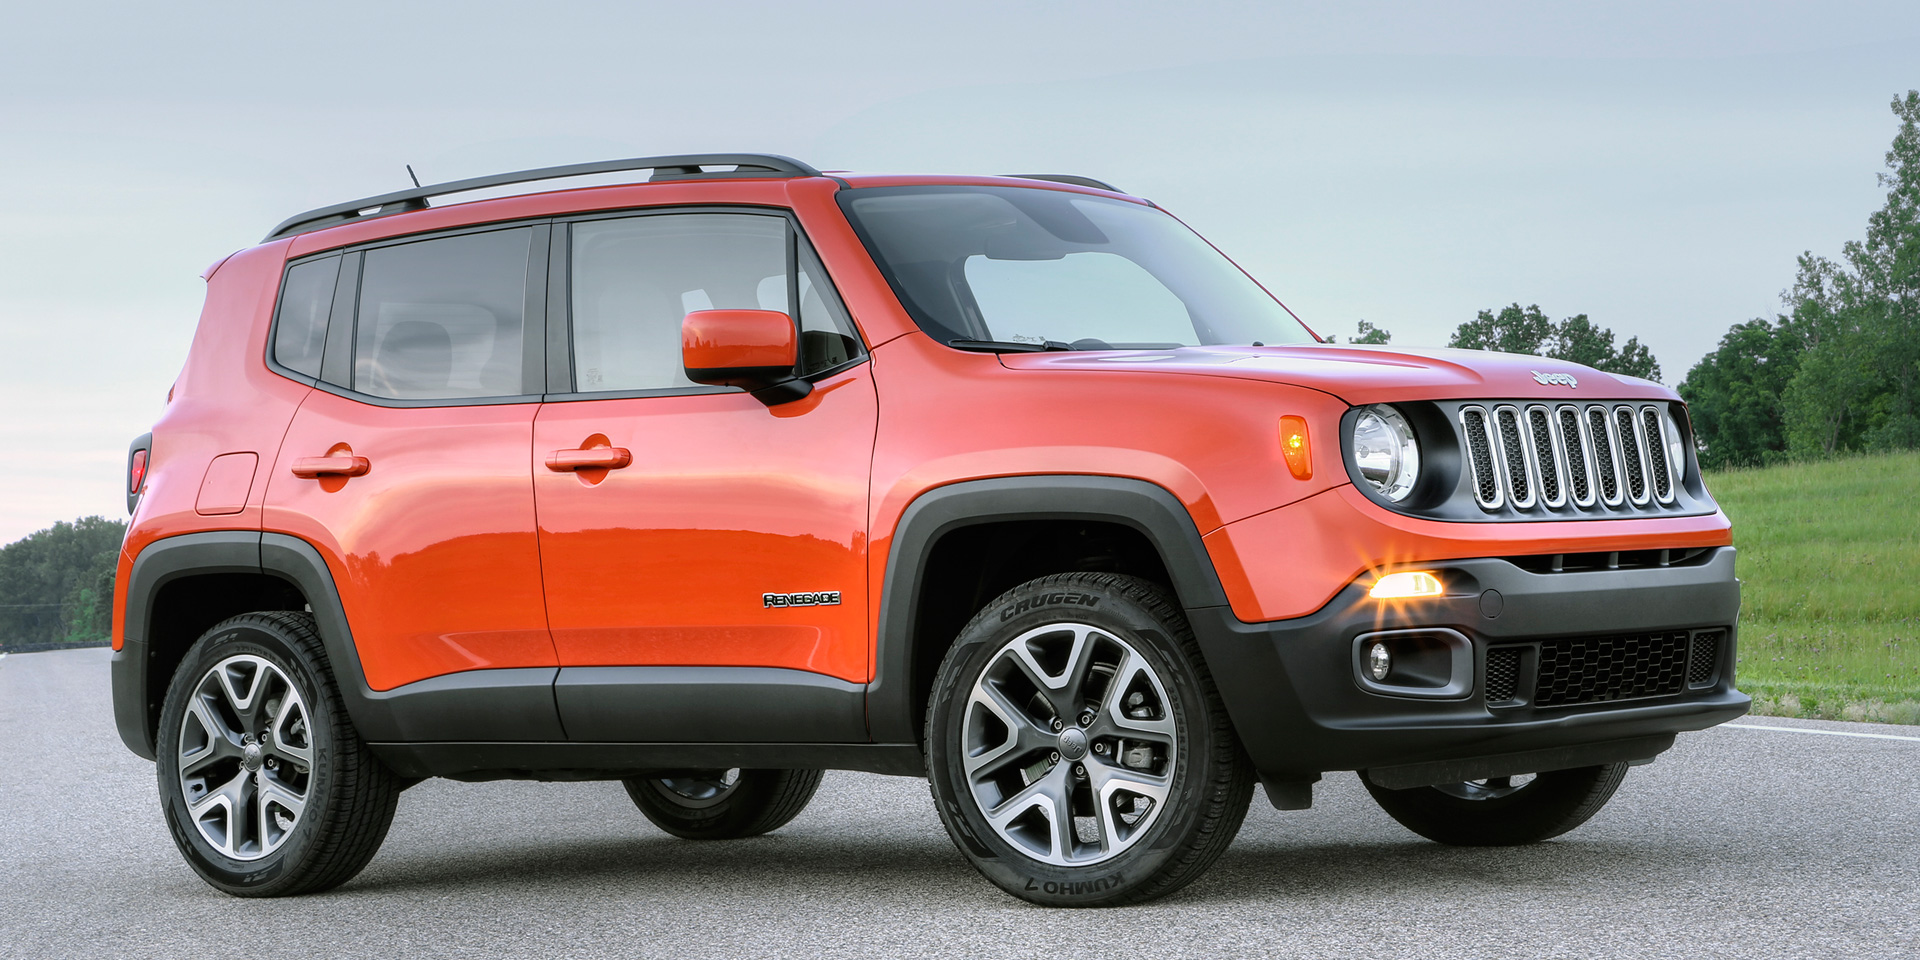 2018 jeep renegade vehicles on display chicago auto show. Black Bedroom Furniture Sets. Home Design Ideas